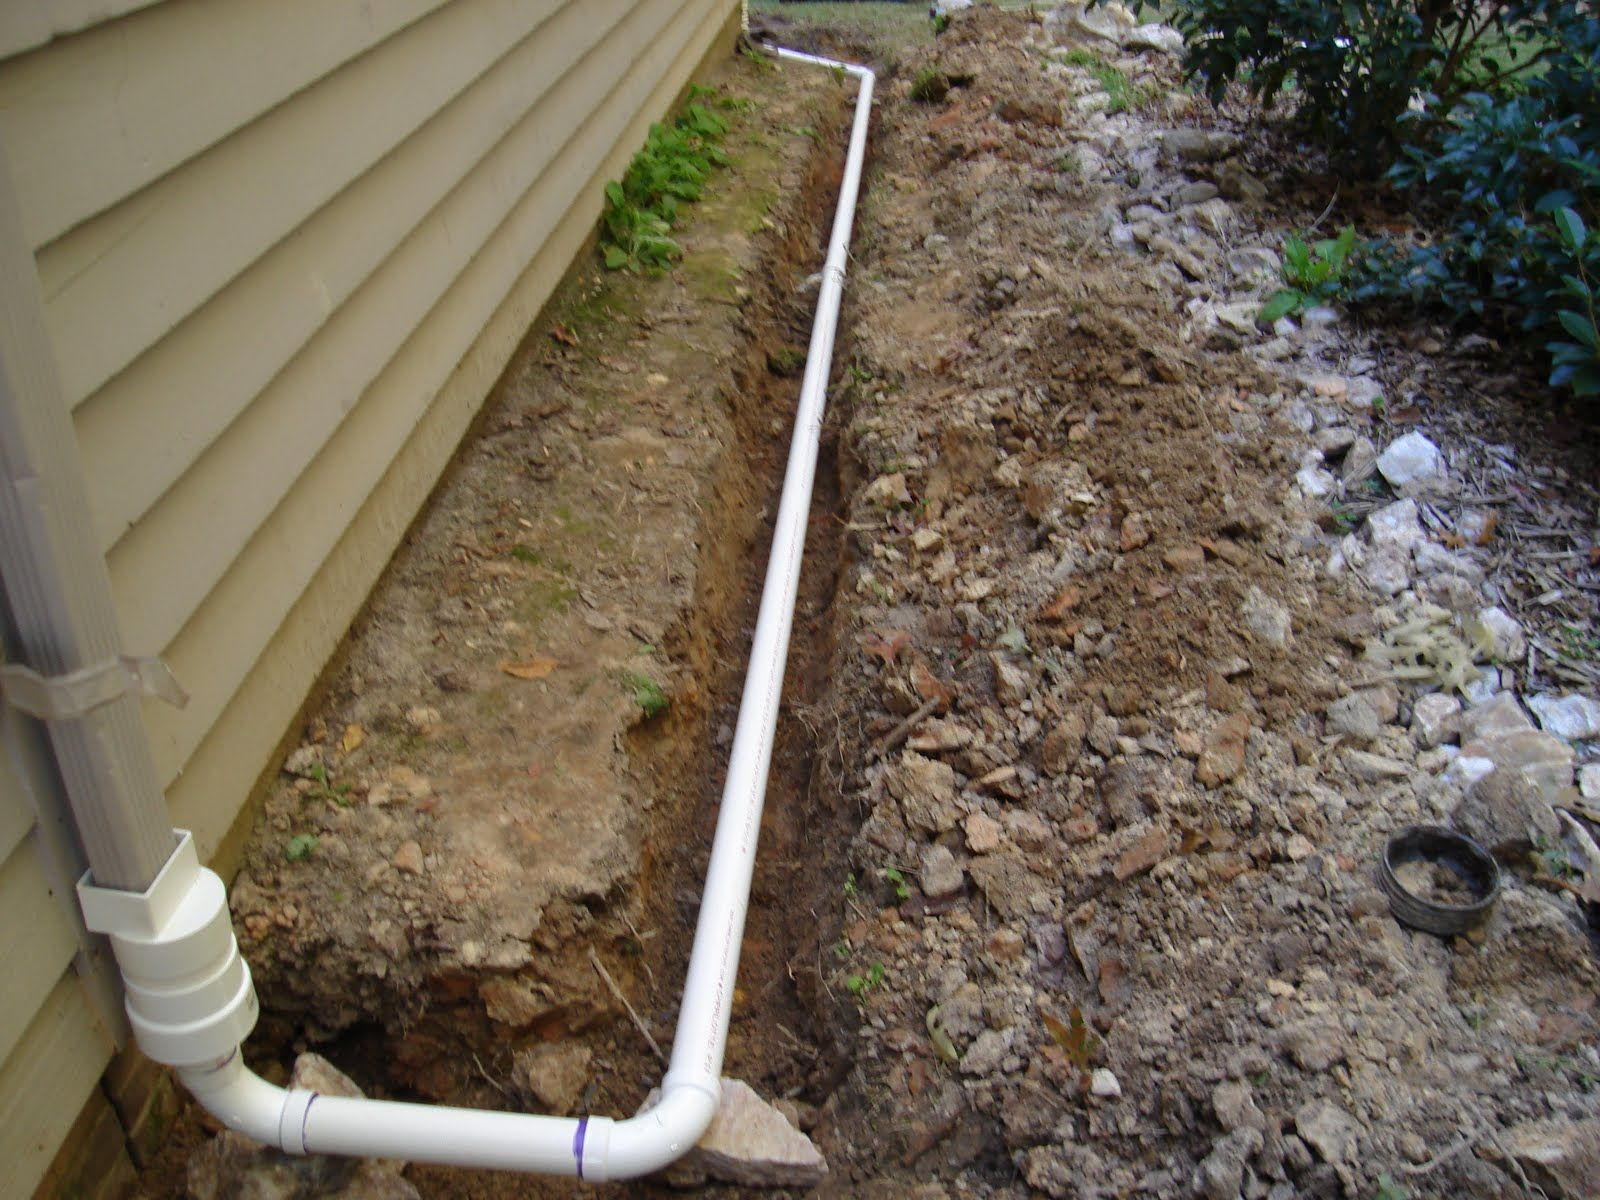 From Mind To Machine Installing A Downspout Drain Downspout Drainage Downspout Gutter Drainage